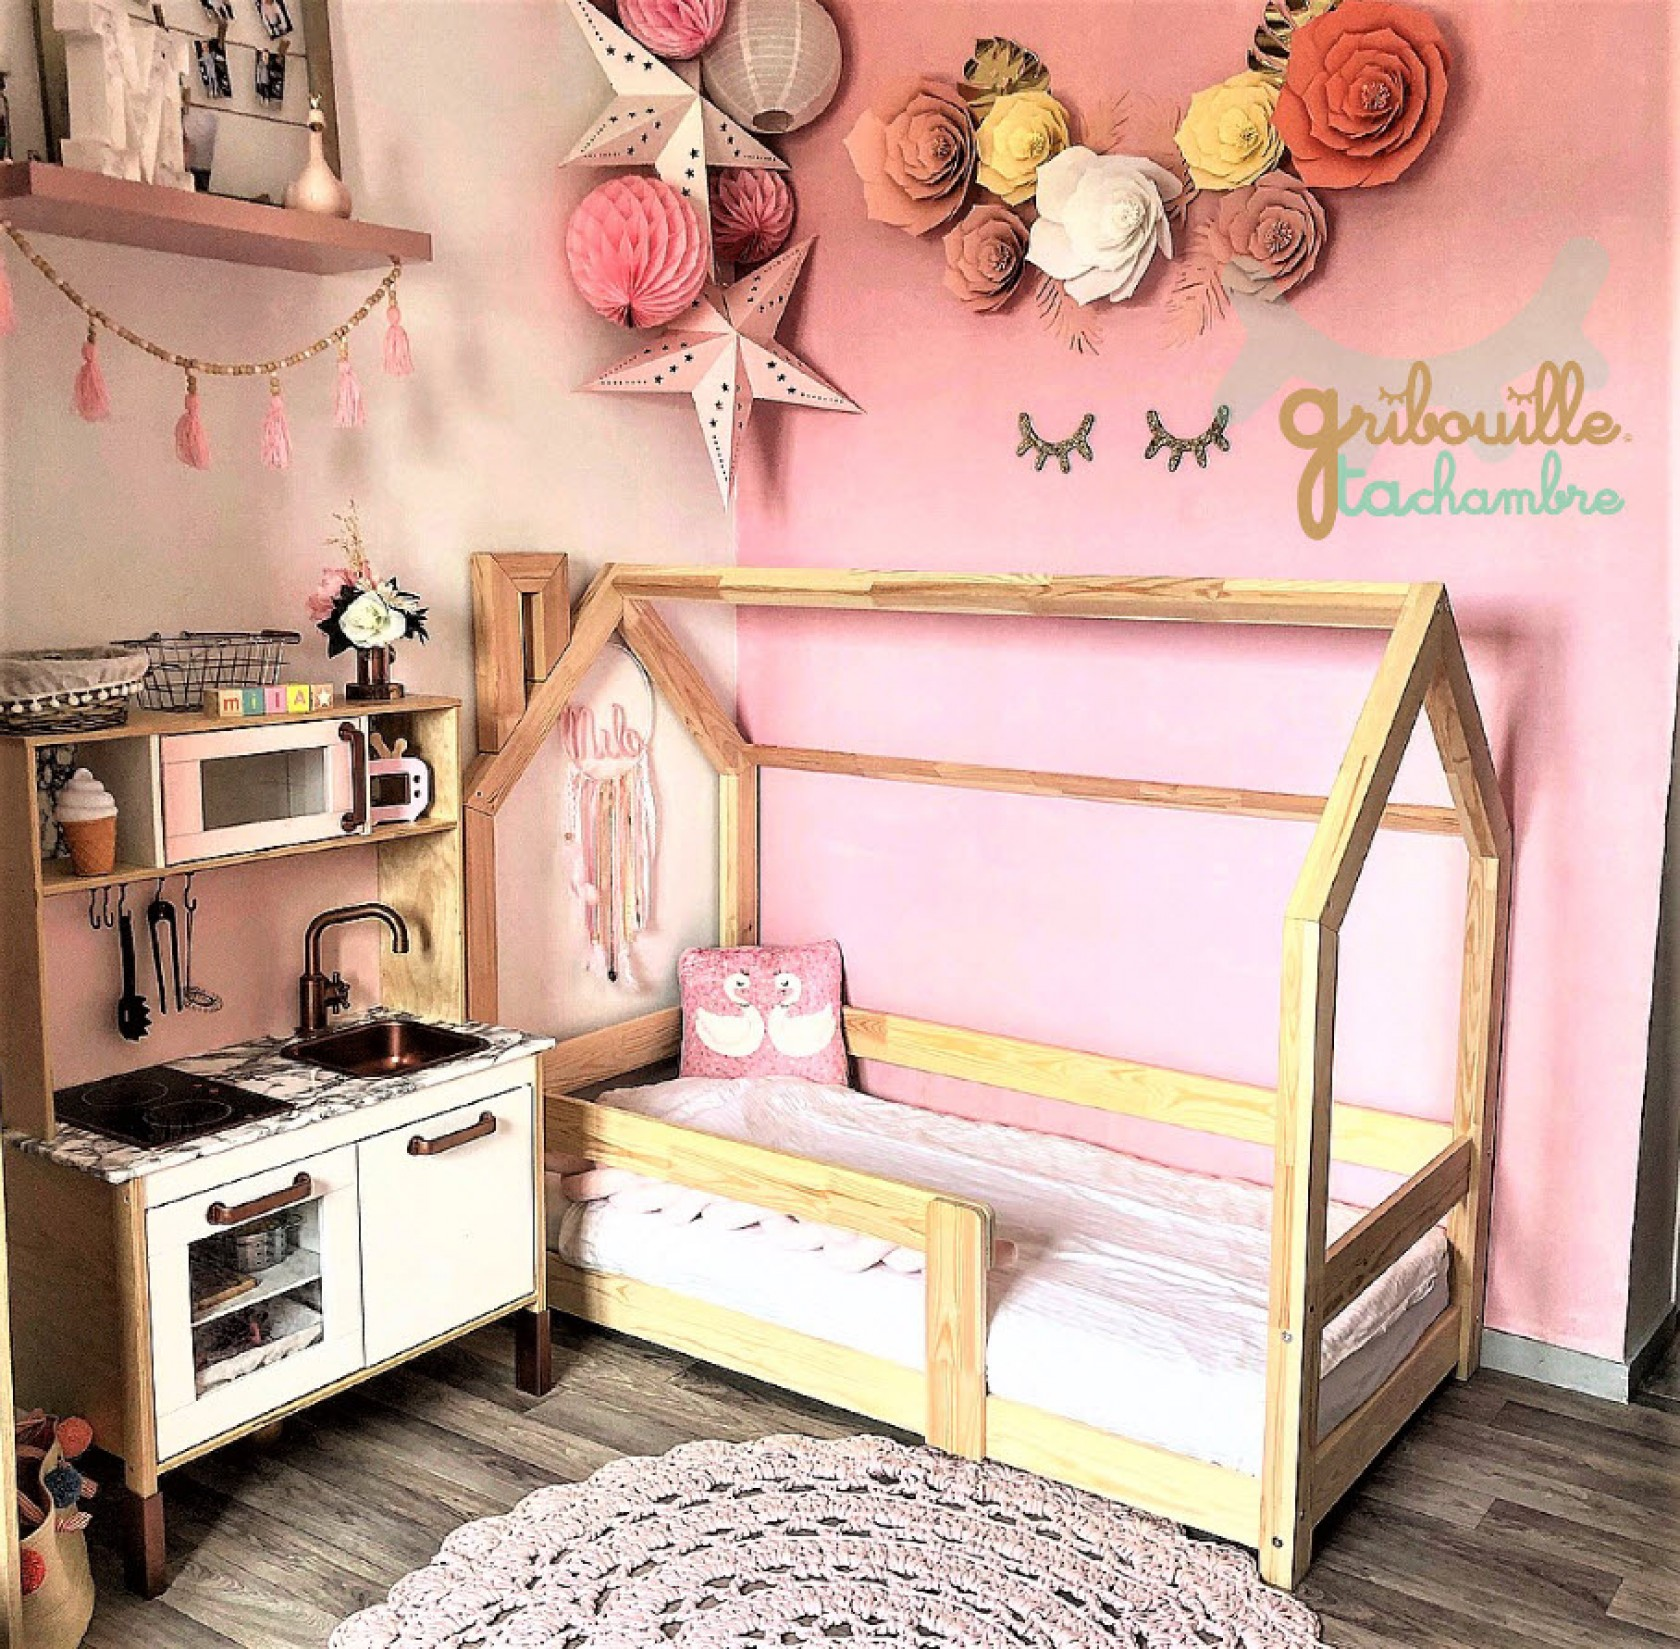 Gribouille ta Chambre  Destination  Inspiration for Travellers